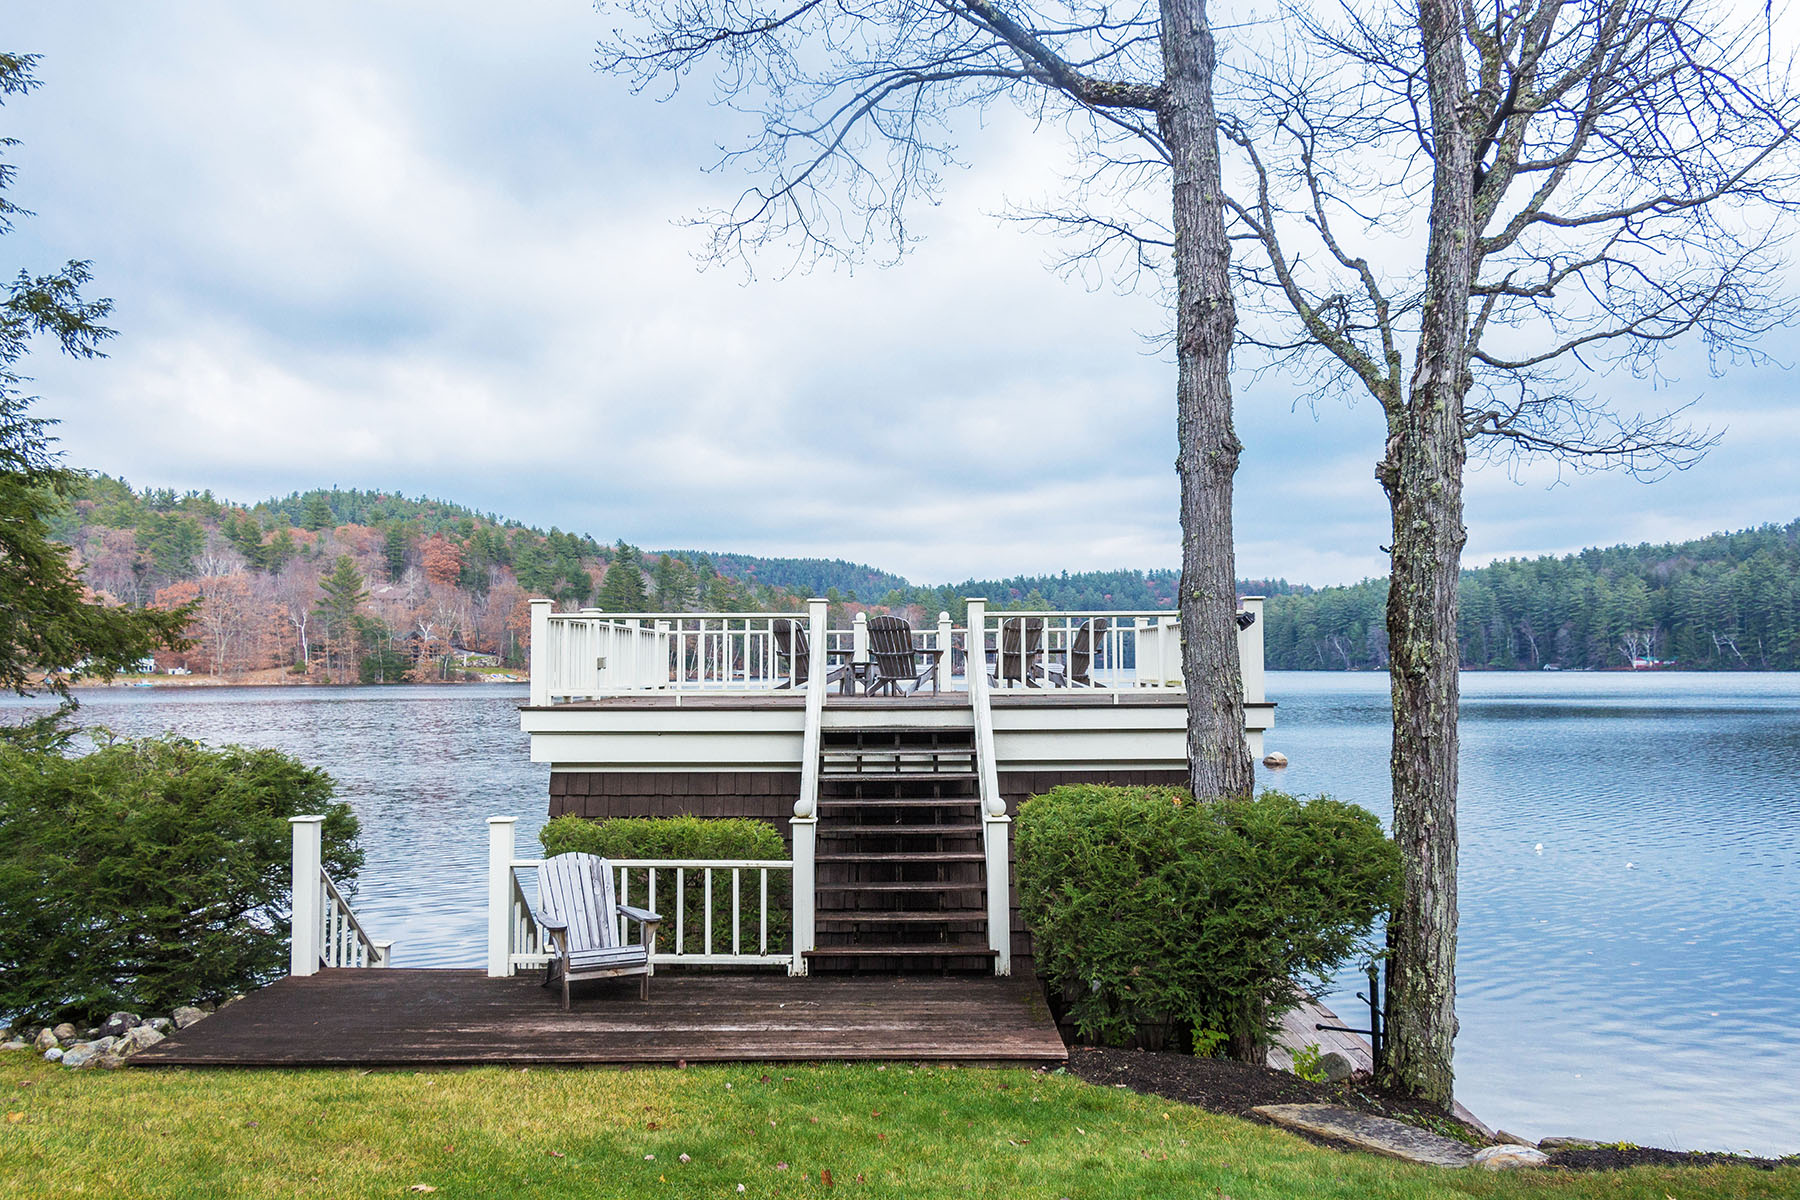 Single Family Home for Sale at Camp CiHi 62 & 58 Bridle Ln Horicon, New York 12815 United States